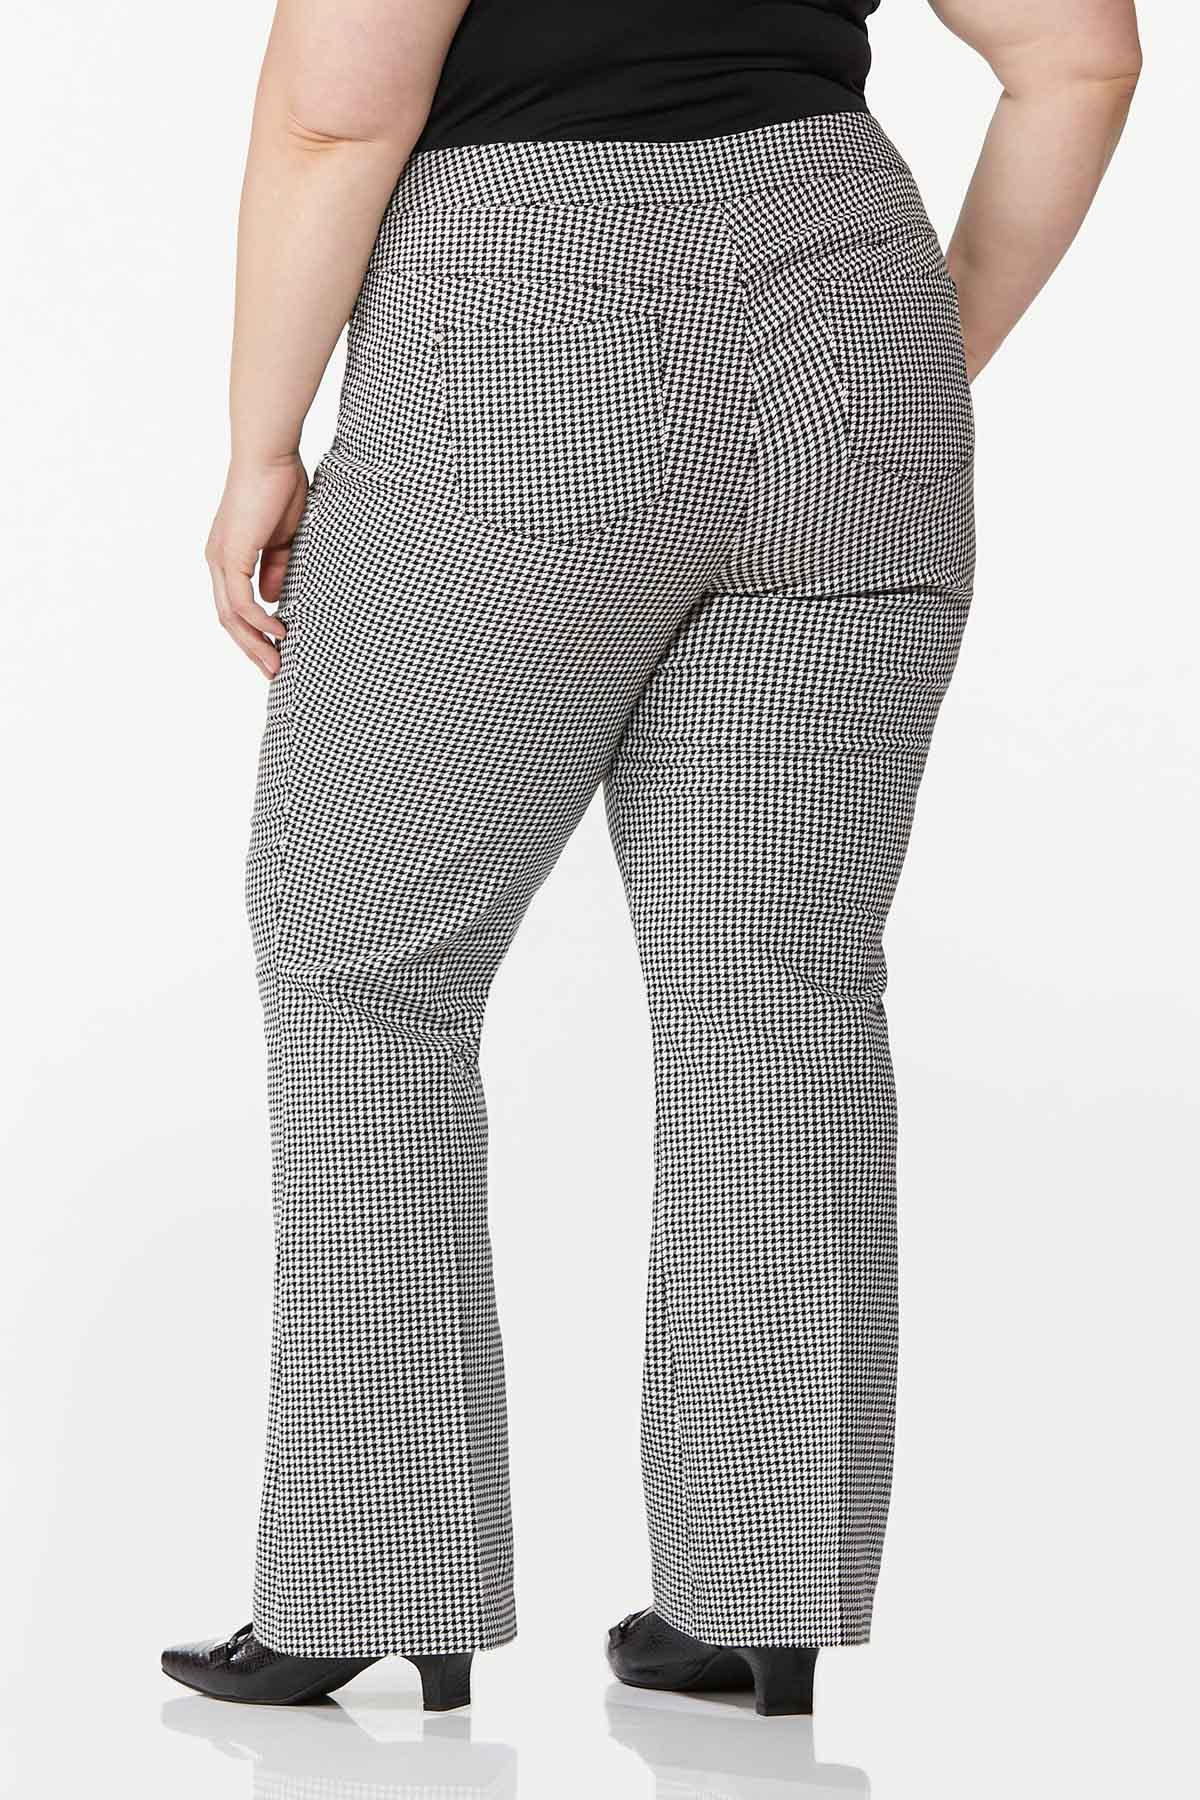 Plus Size Houndstooth Pull-On Pants (Item #44756694)